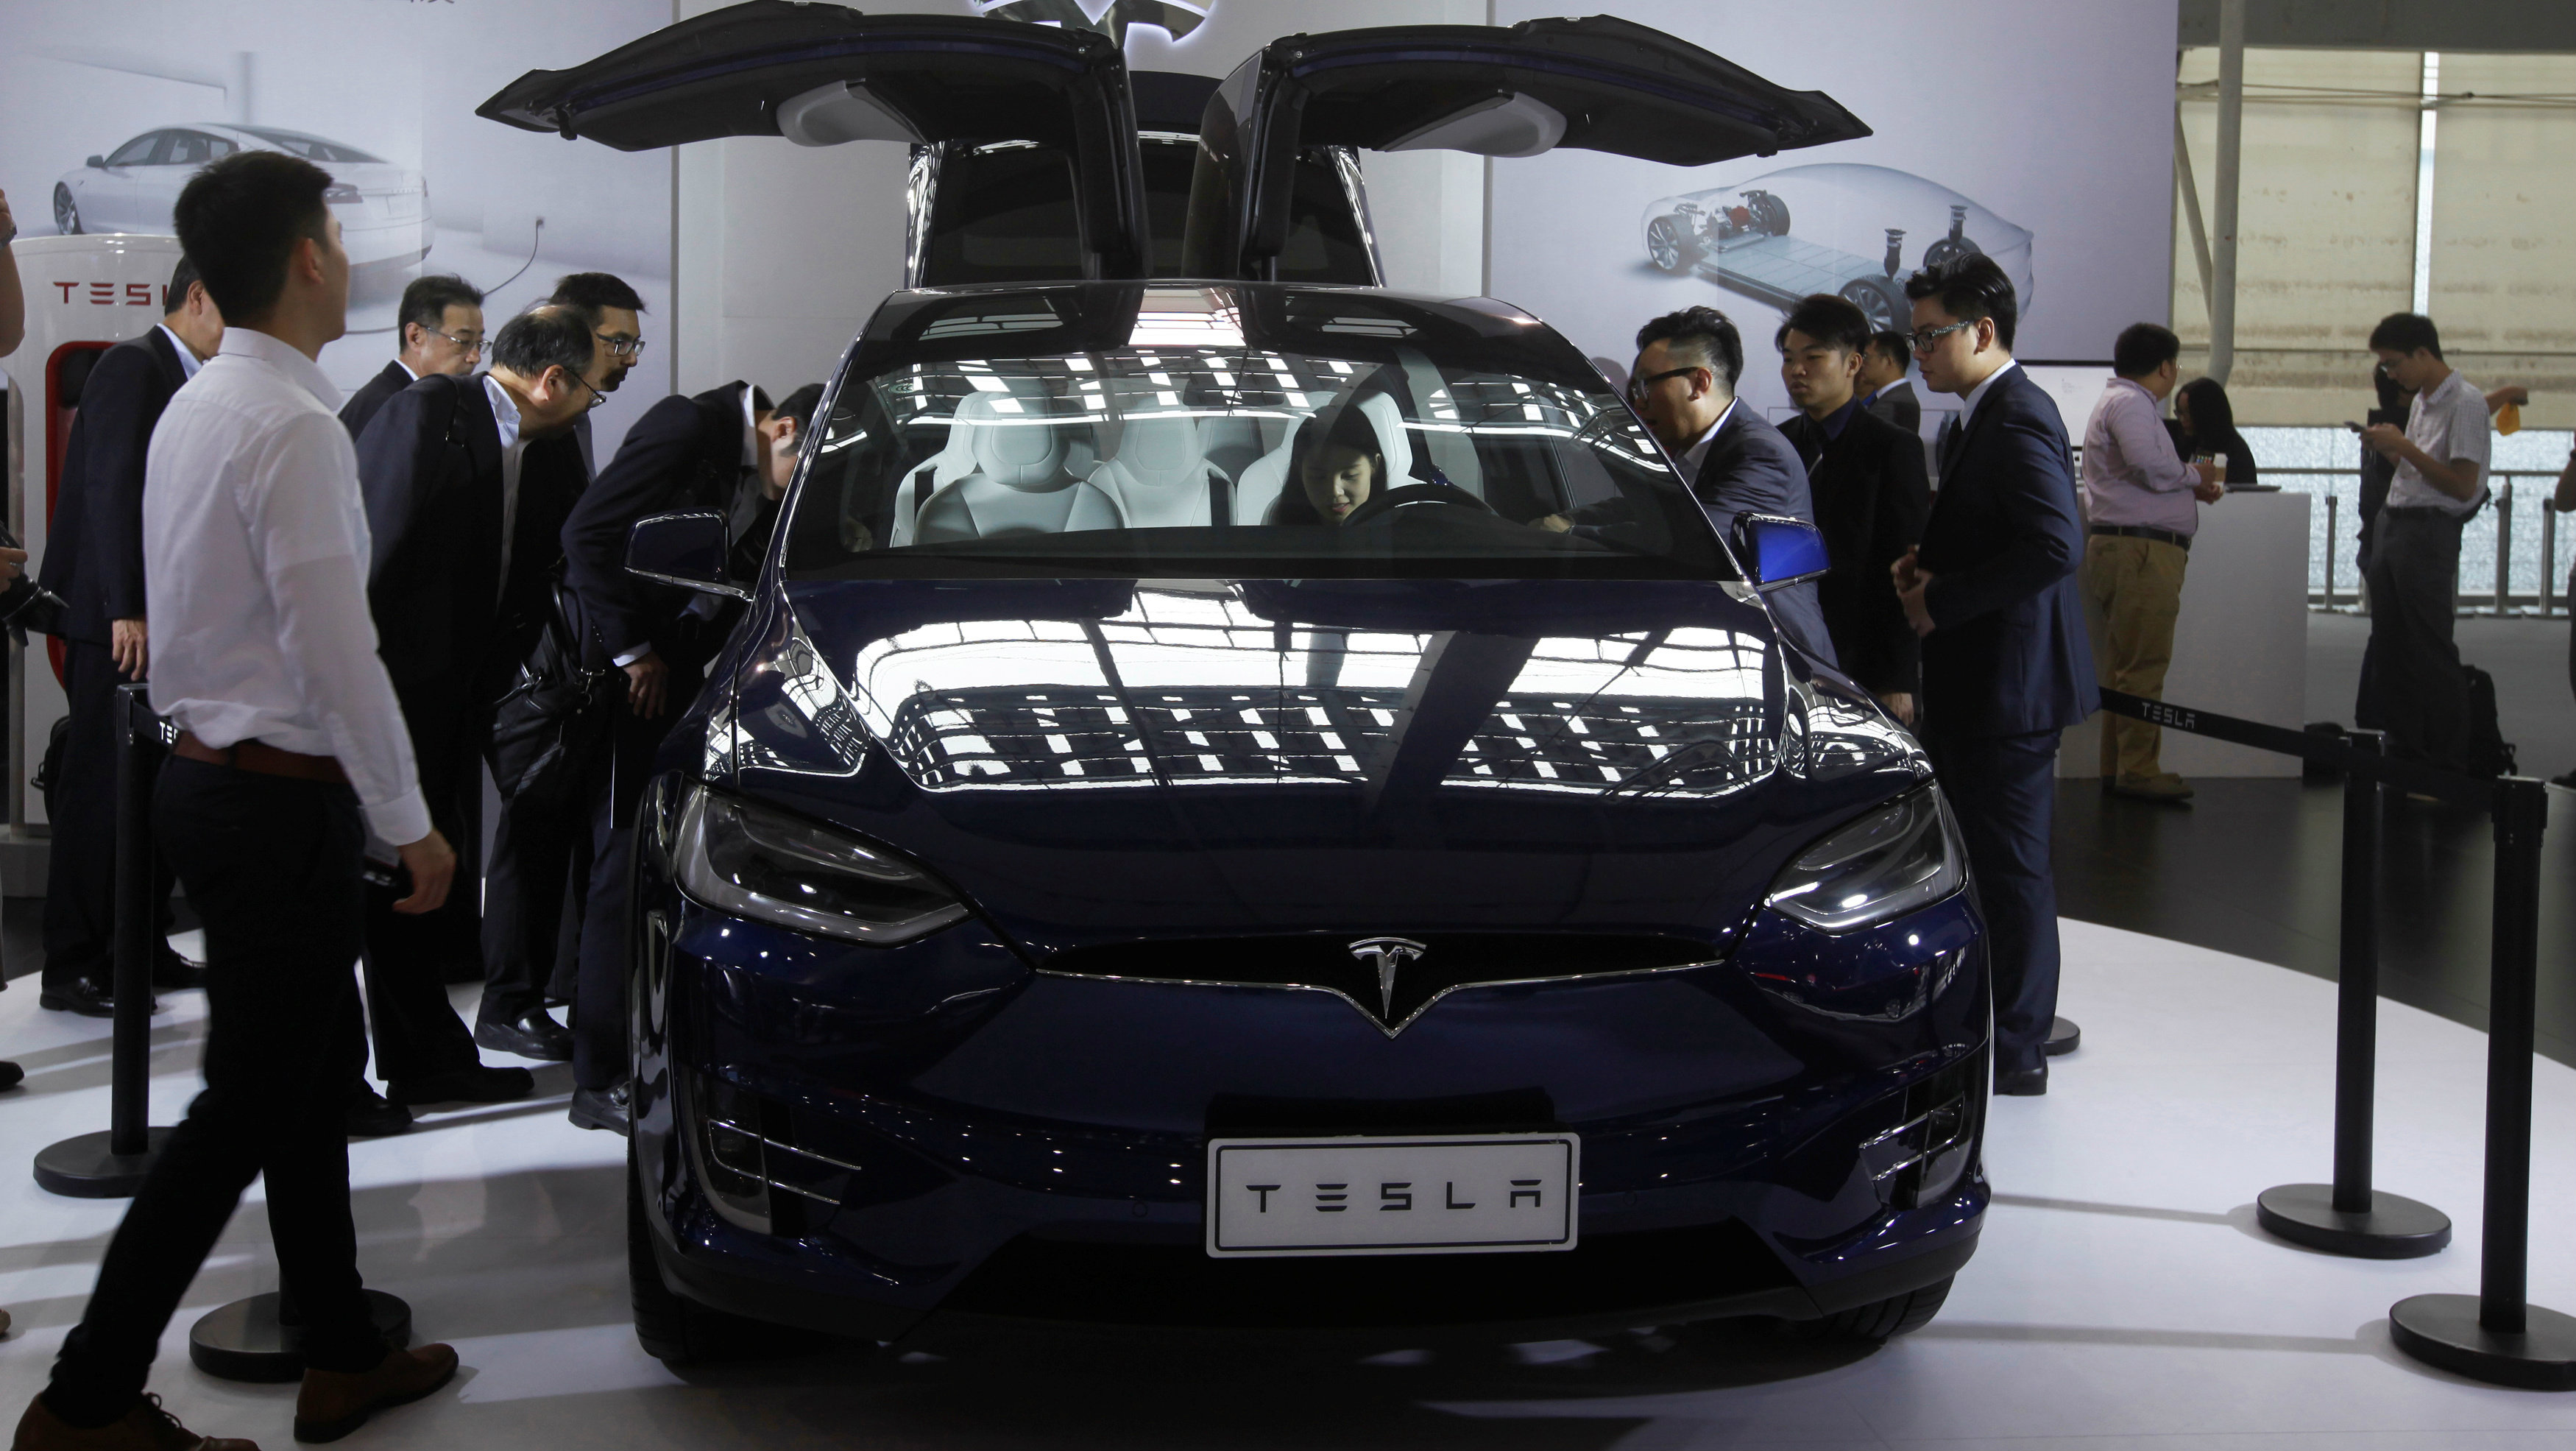 Visitors surround a Tesla Model X at China (Guangzhou) International Automobile Exhibition in Guangzhou, China November 18, 2016.